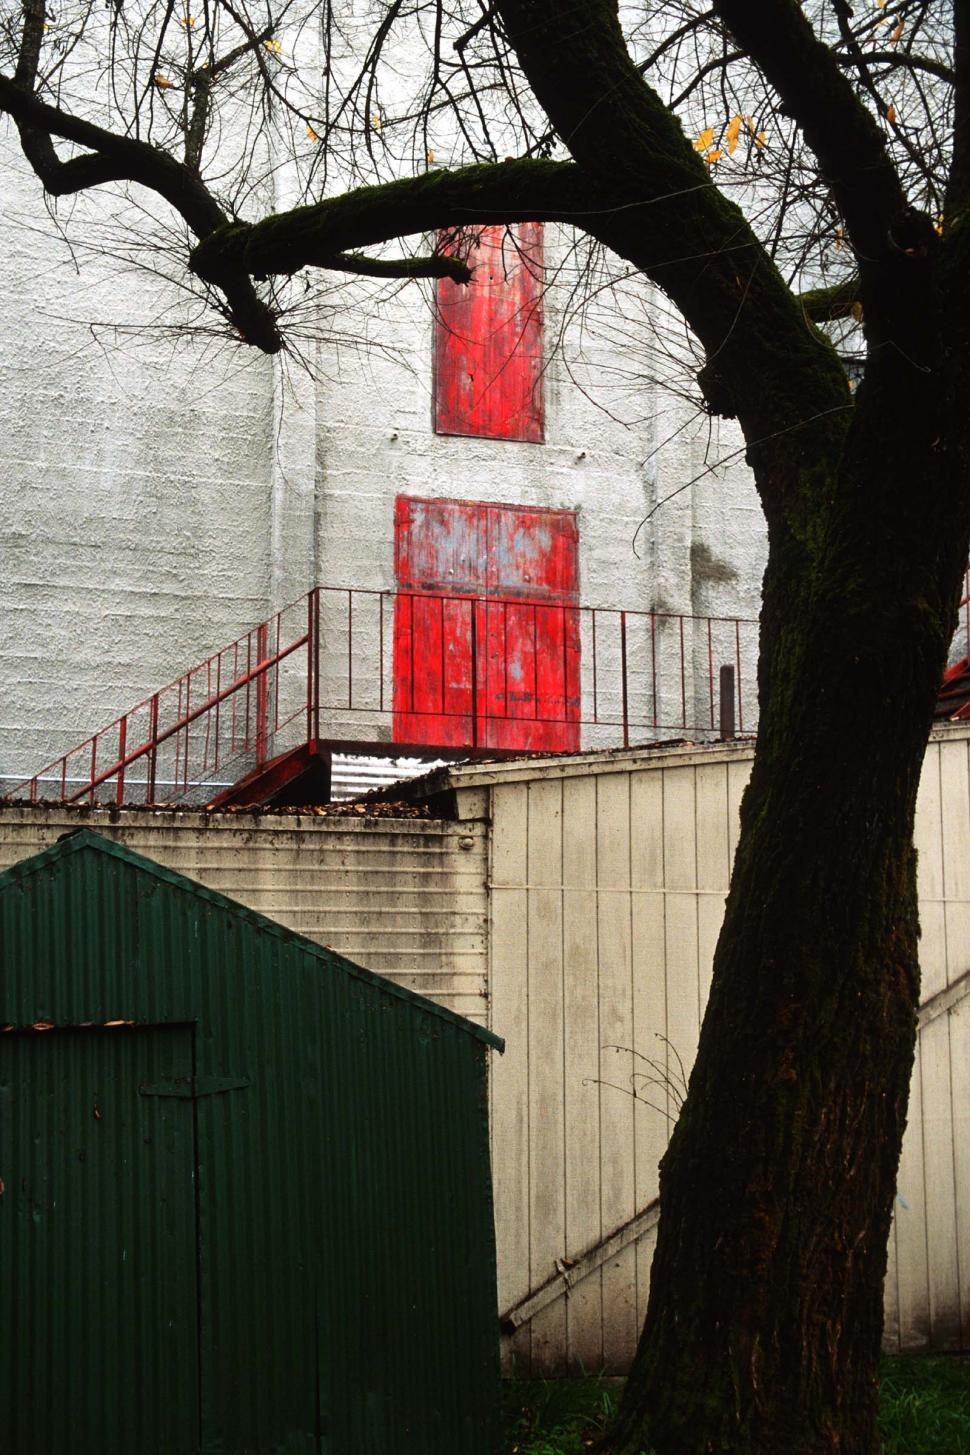 Free image of Weathered red door in the background of tree shapes.